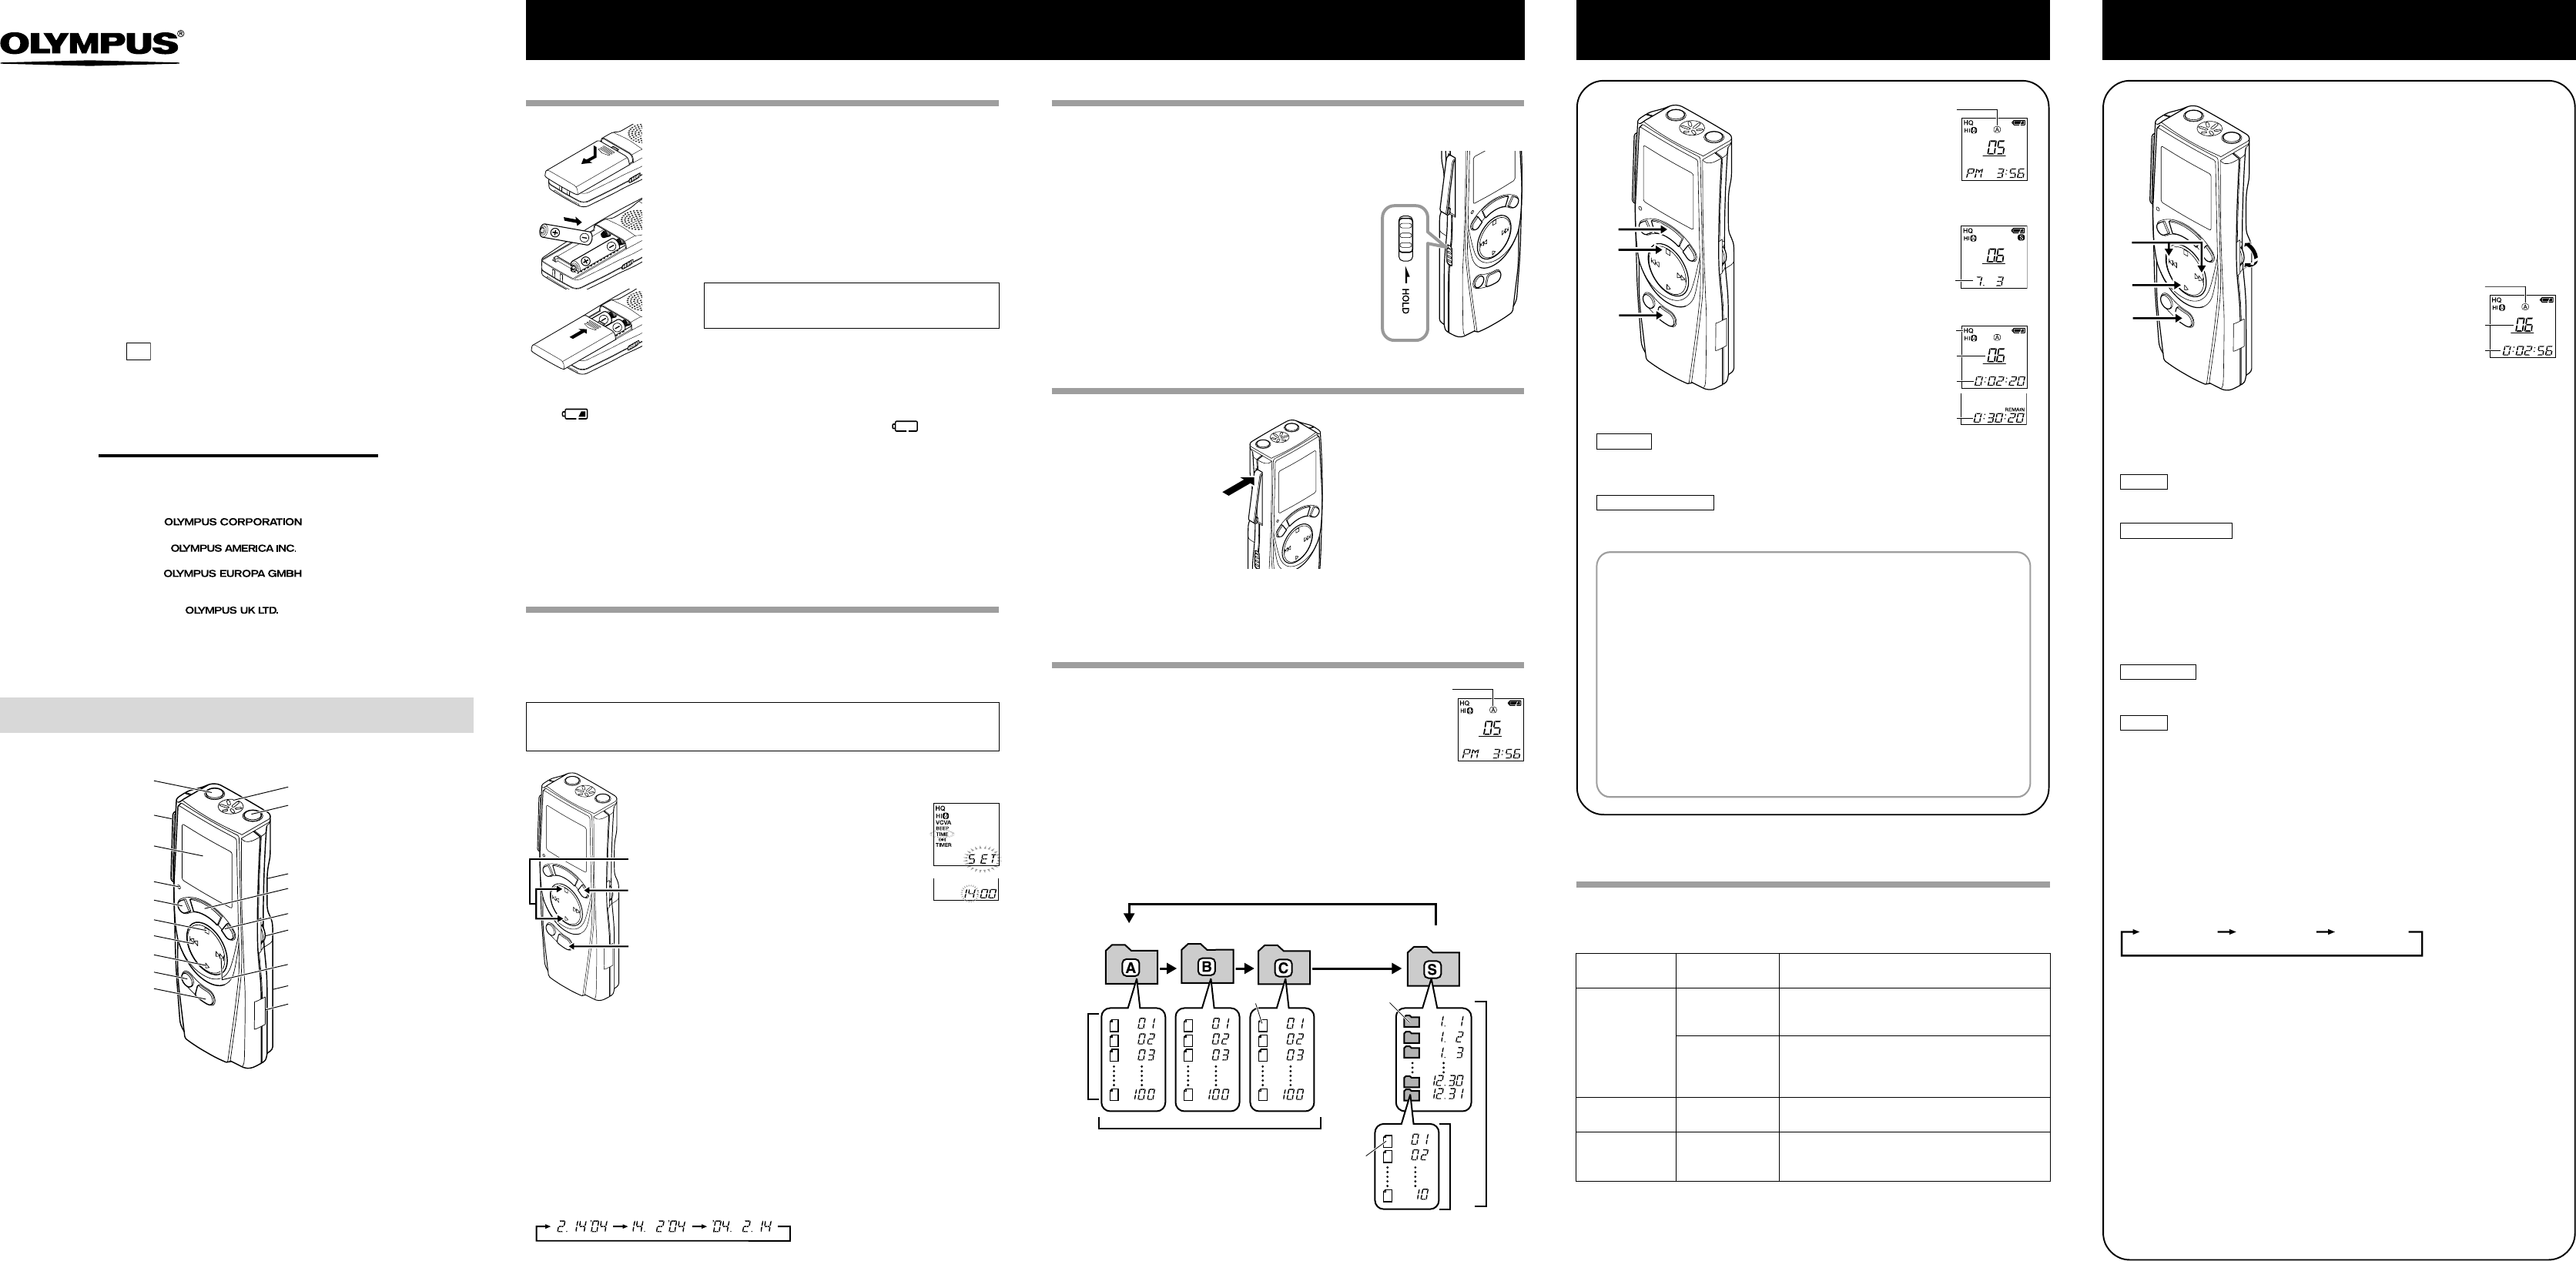 User manual Olympus VN-240 (2 pages)